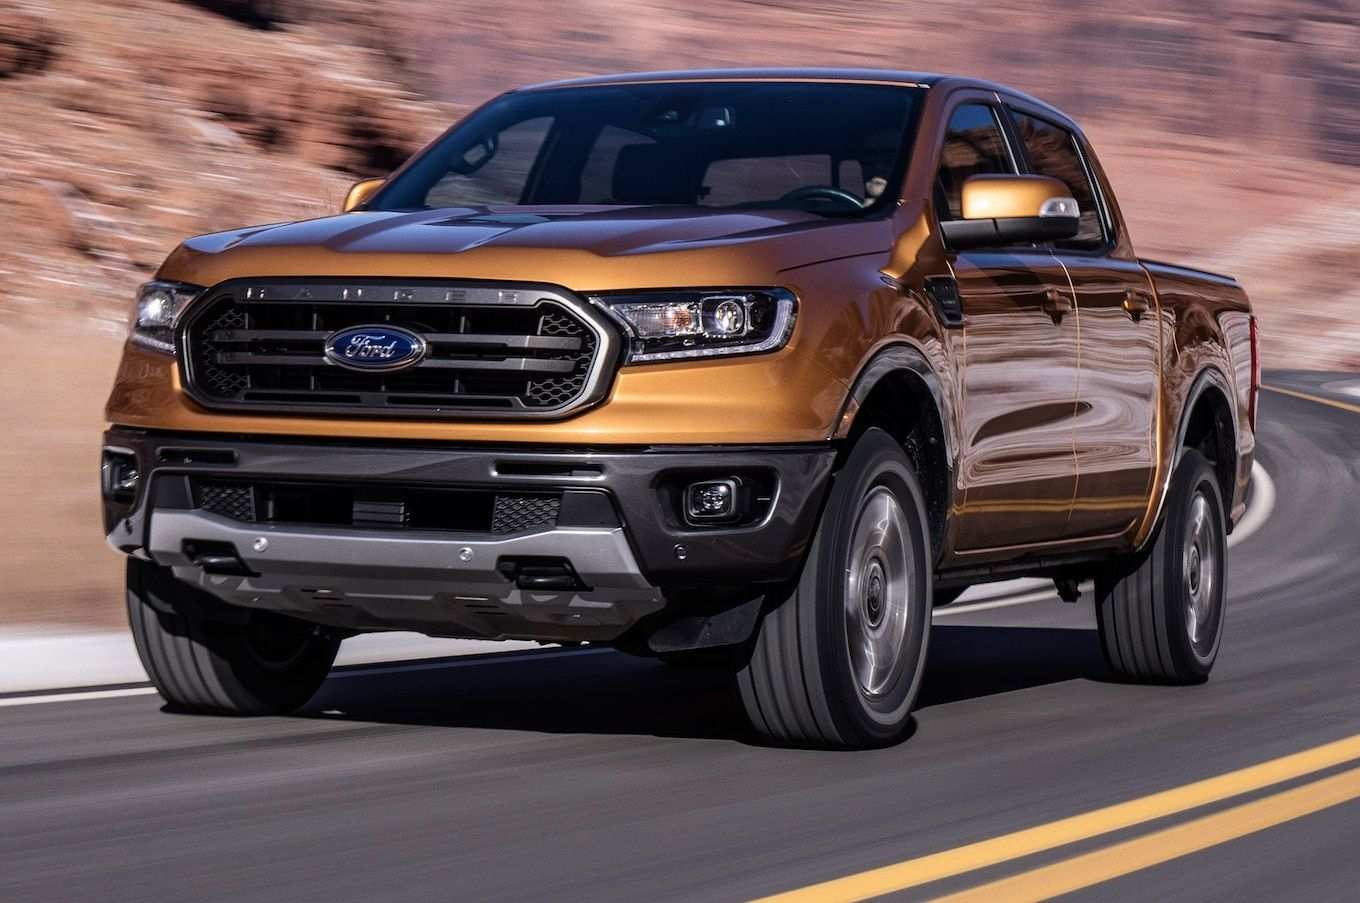 41 New Ford 2019 Price Release Date Price And Review Images by Ford 2019 Price Release Date Price And Review